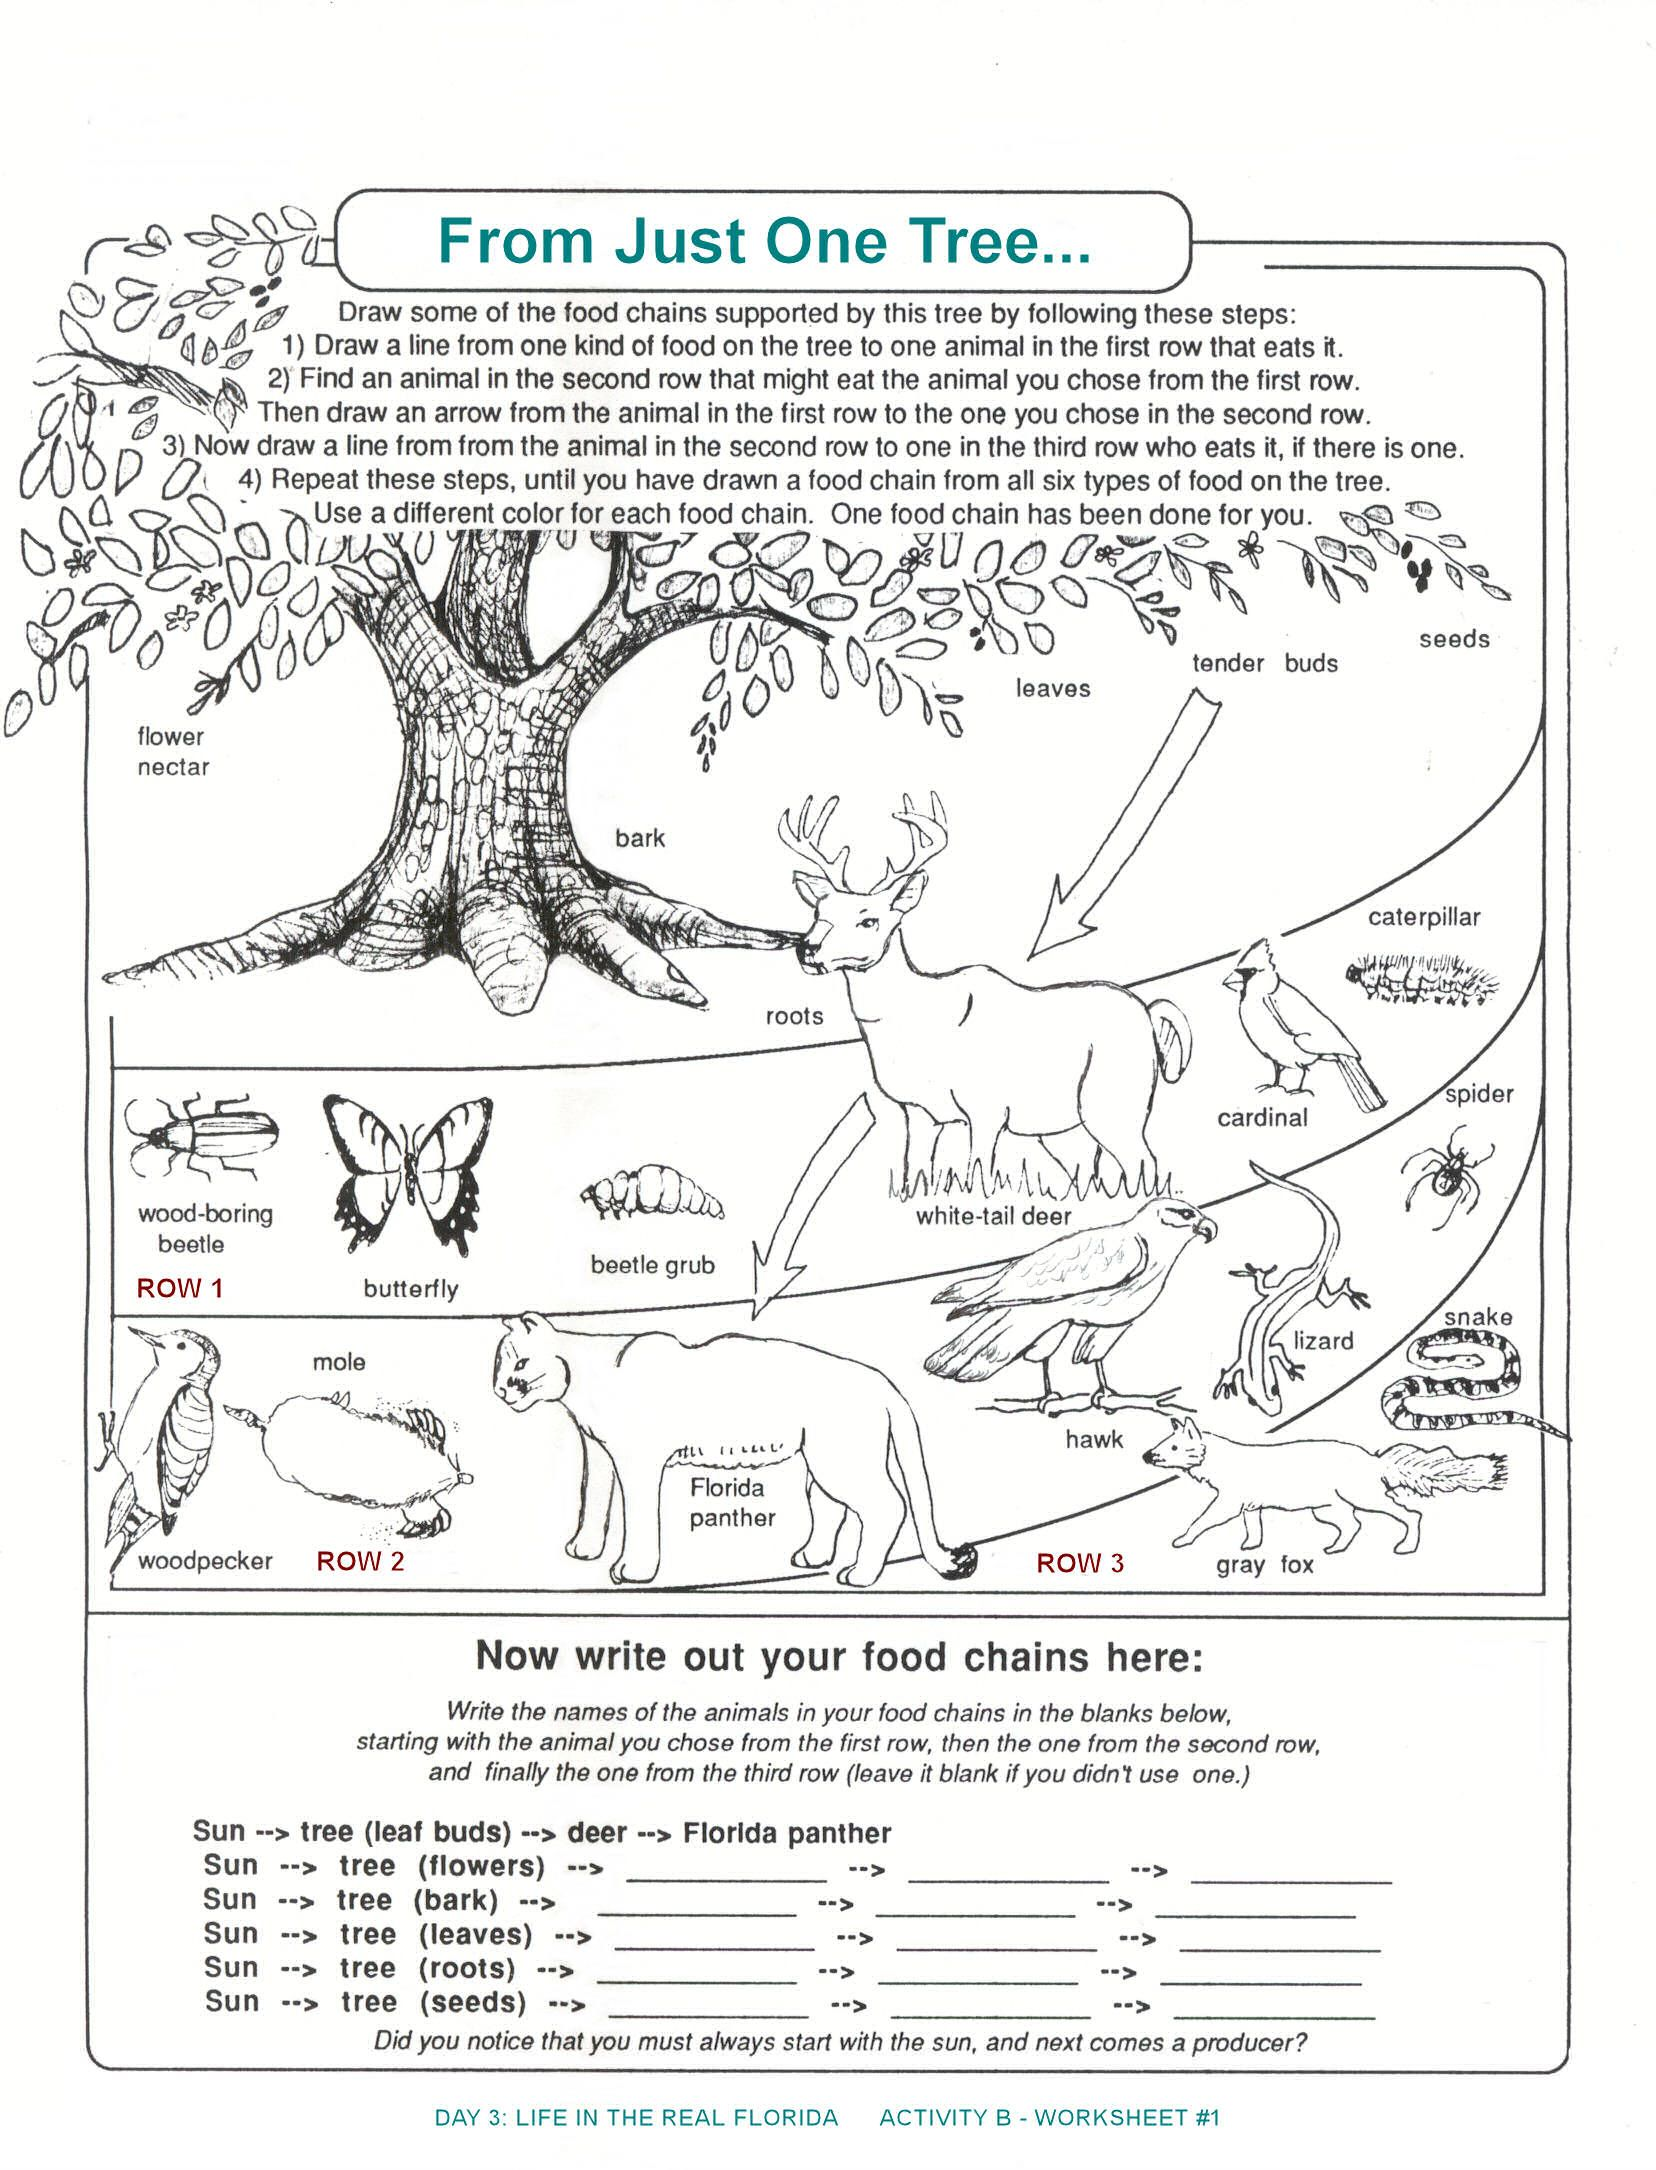 Worksheet Ecology Worksheets ecology worksheets for biology 1000 images about ecosystem on pinterest cut and paste food worksheets